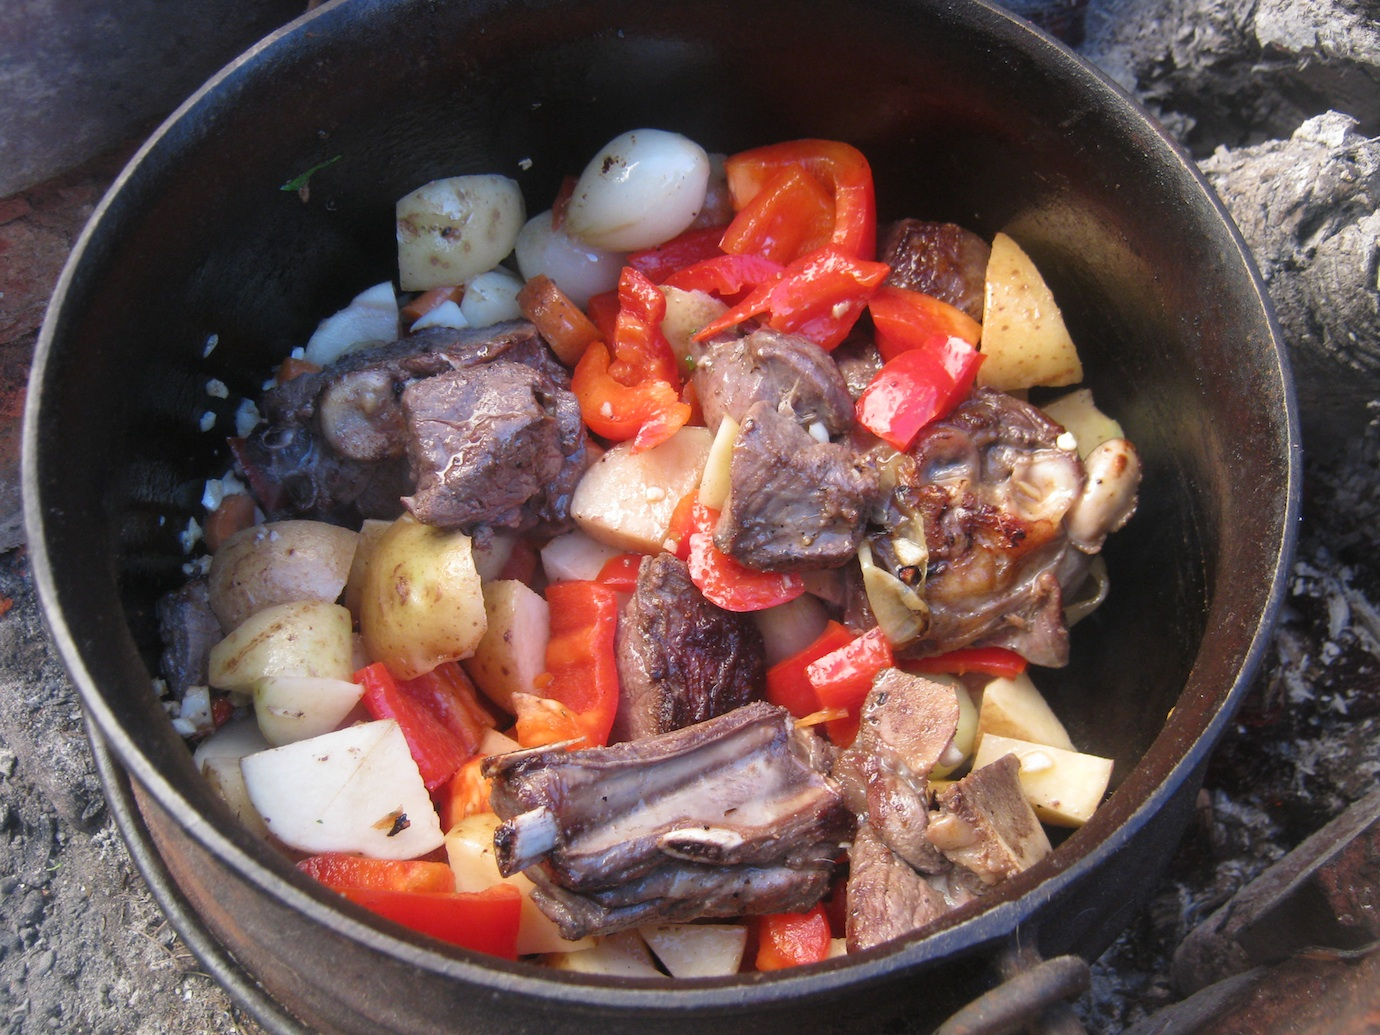 Venison, onions, carrots, garlic, peppers and potatoes in the potjie